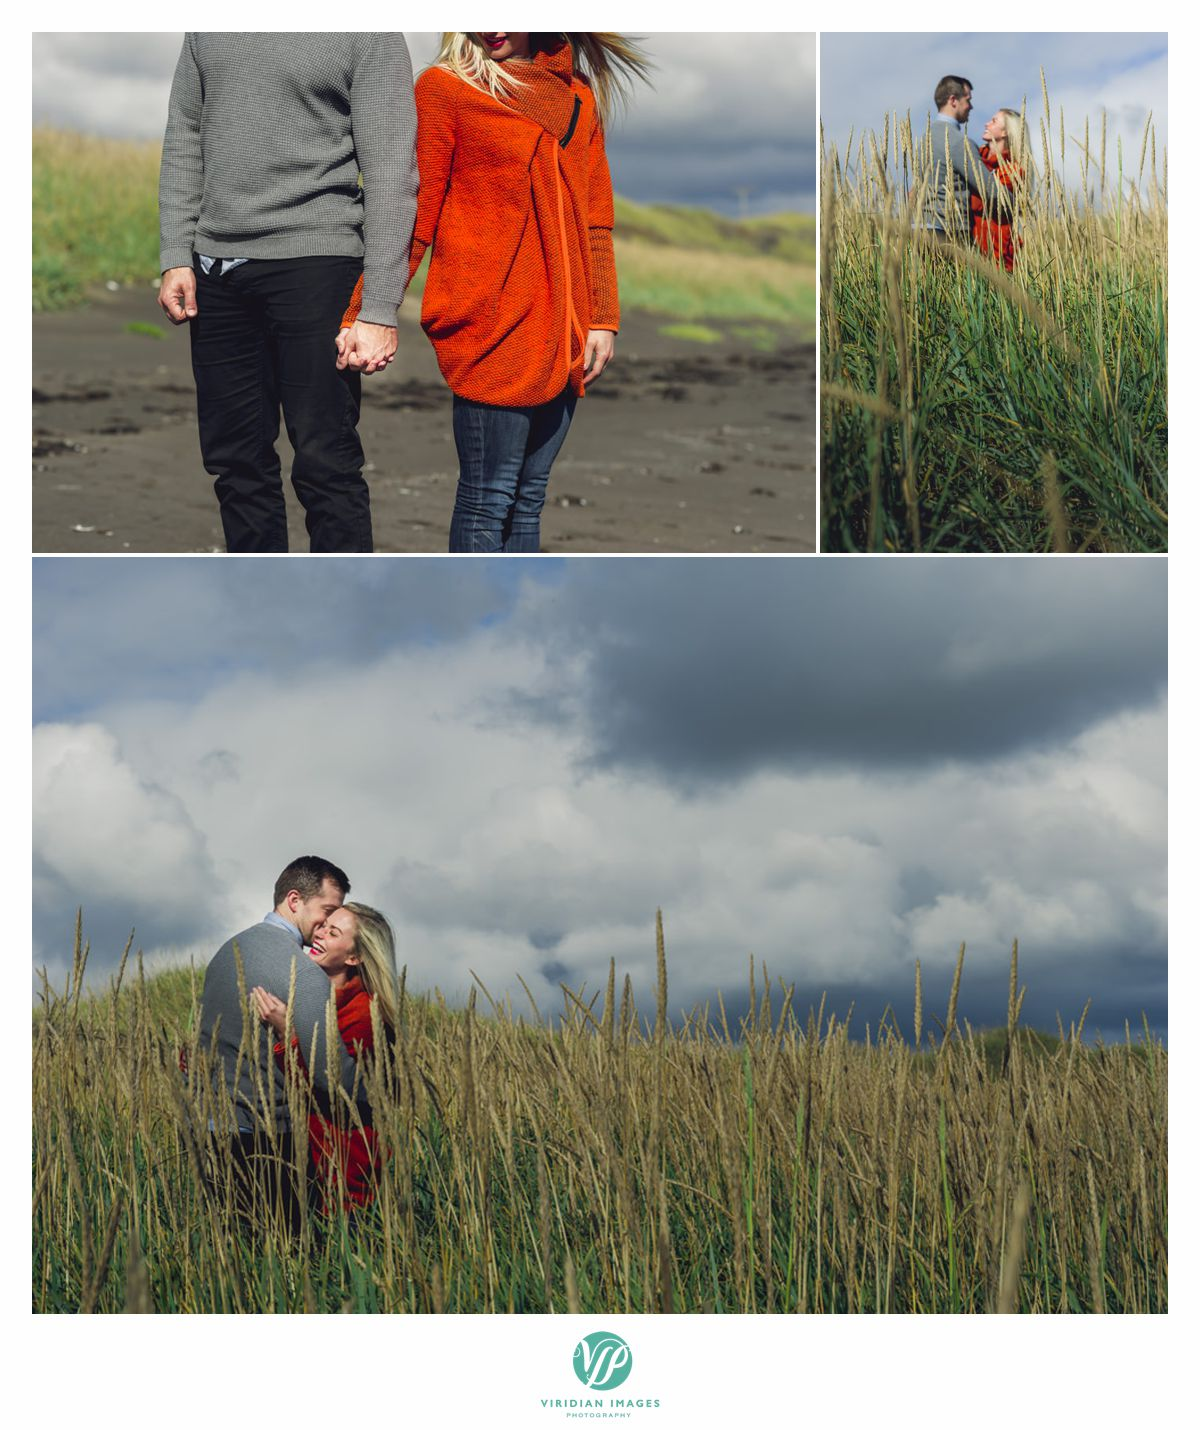 iceland-engagement-destination-black-sand-beach-viridian-images-photography-18